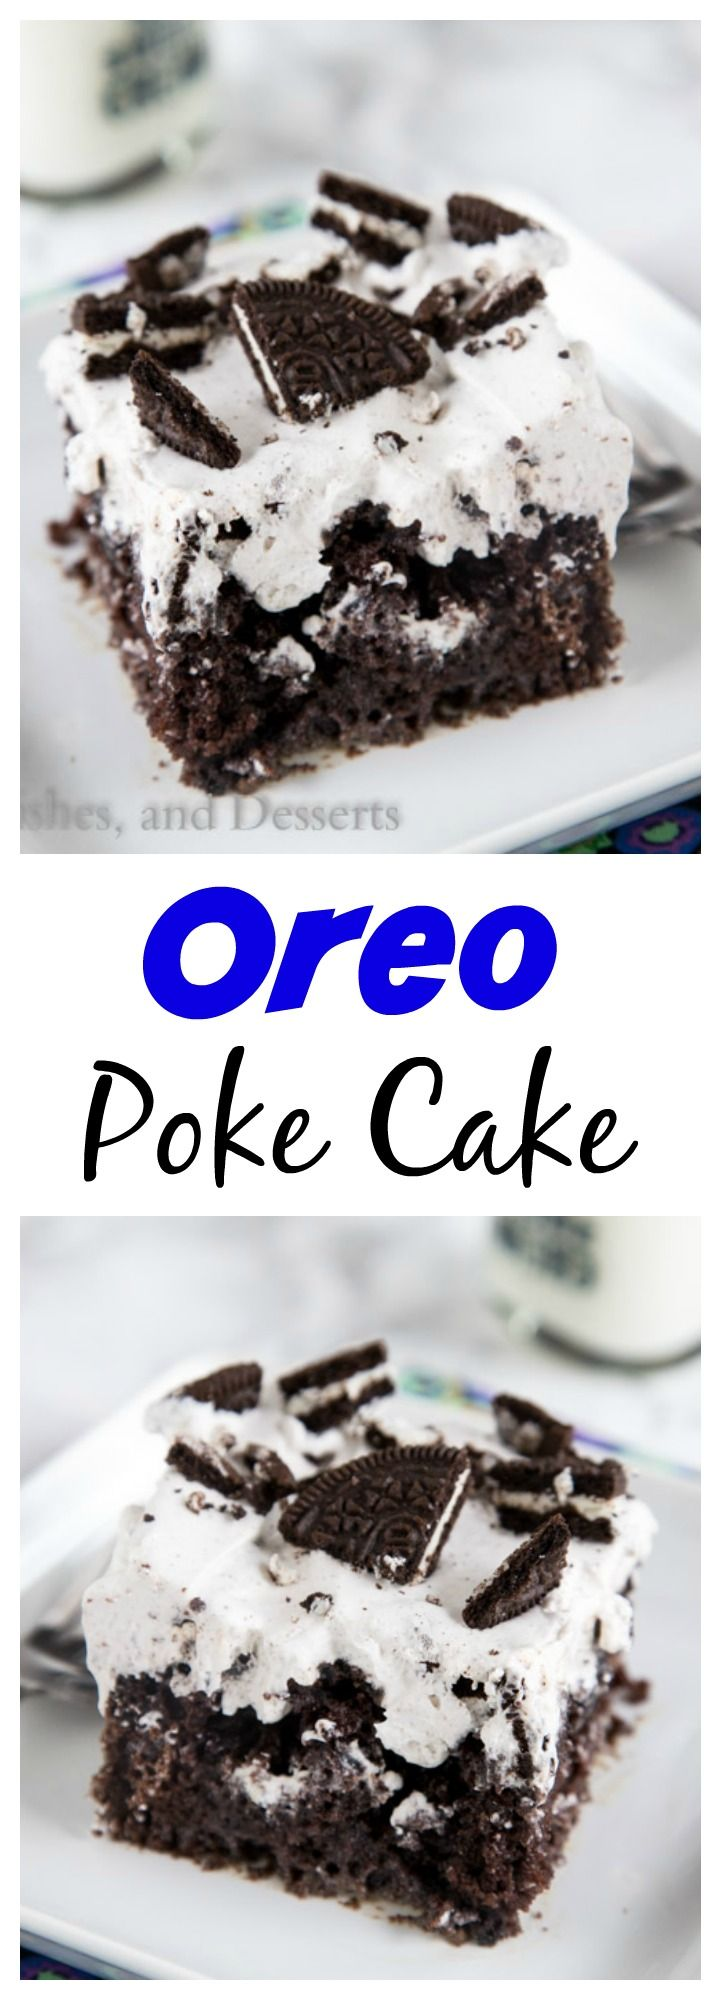 Oreo Poke Cake – An easy chocolate cake topped with an Oreo pudding and whipped cream mixture.  Light, creamy, and so good!